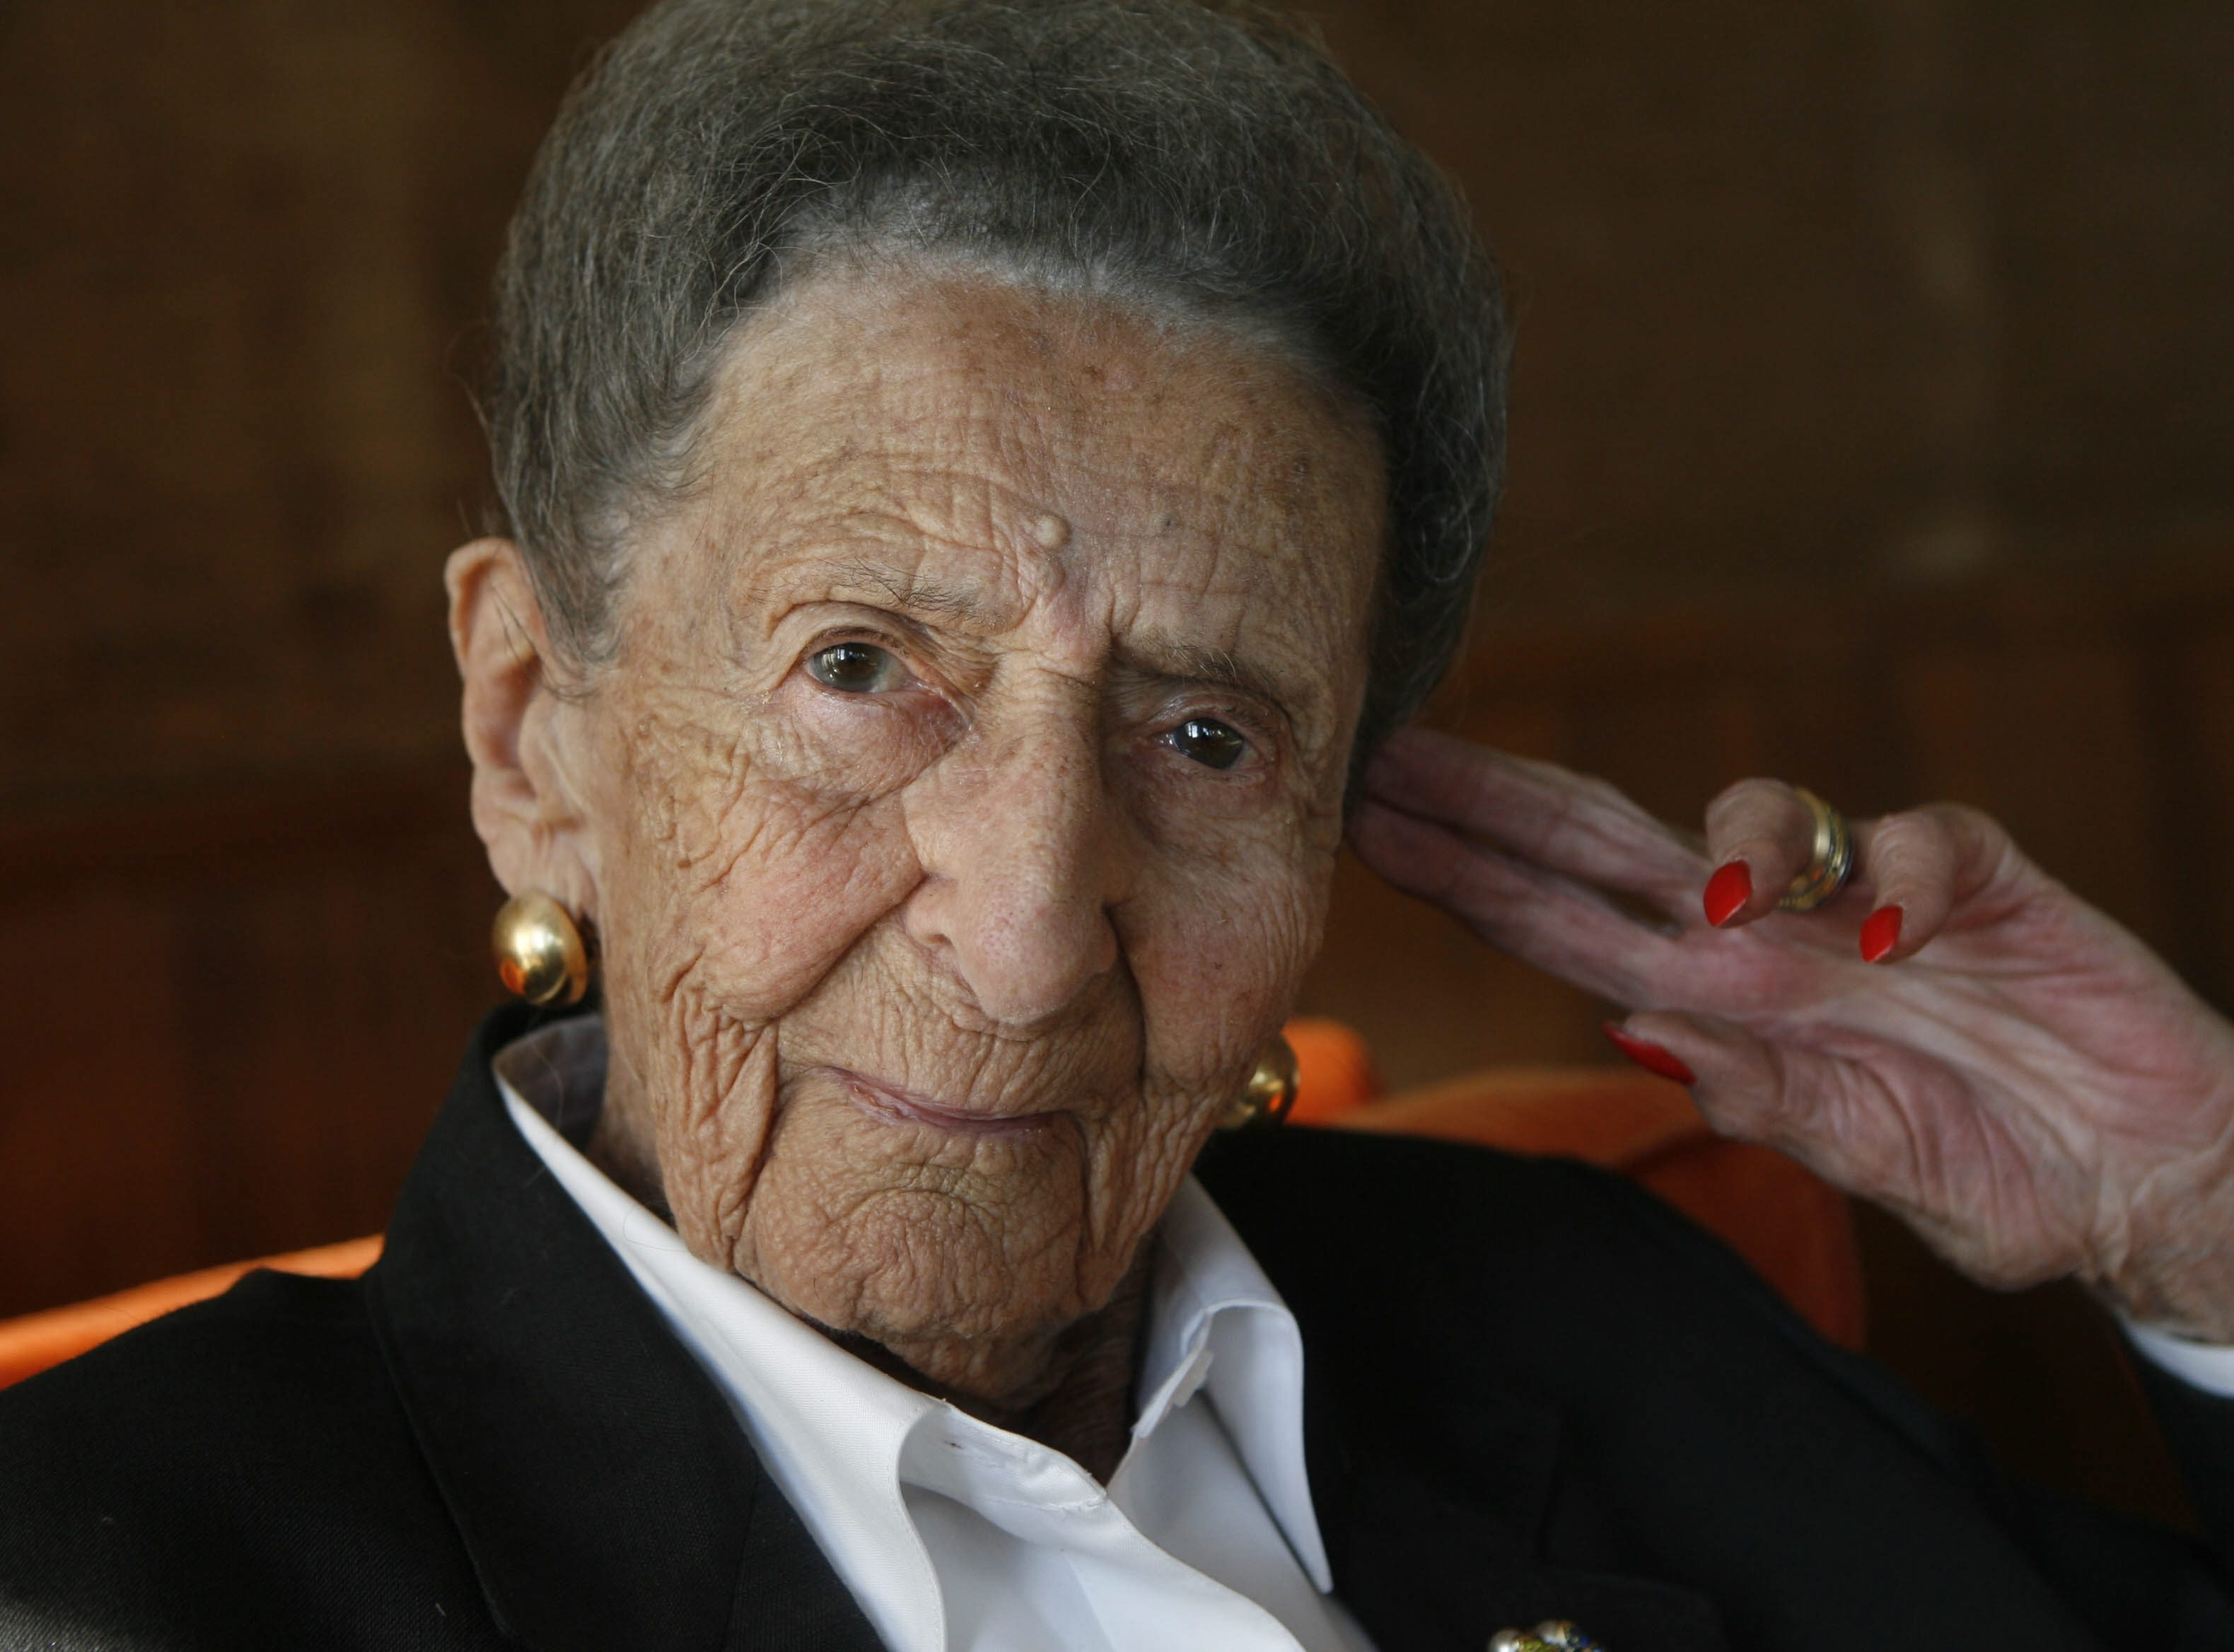 Hertha Ball died Sunday at age 103 in the Clarence farmhouse that was a large part of her life.